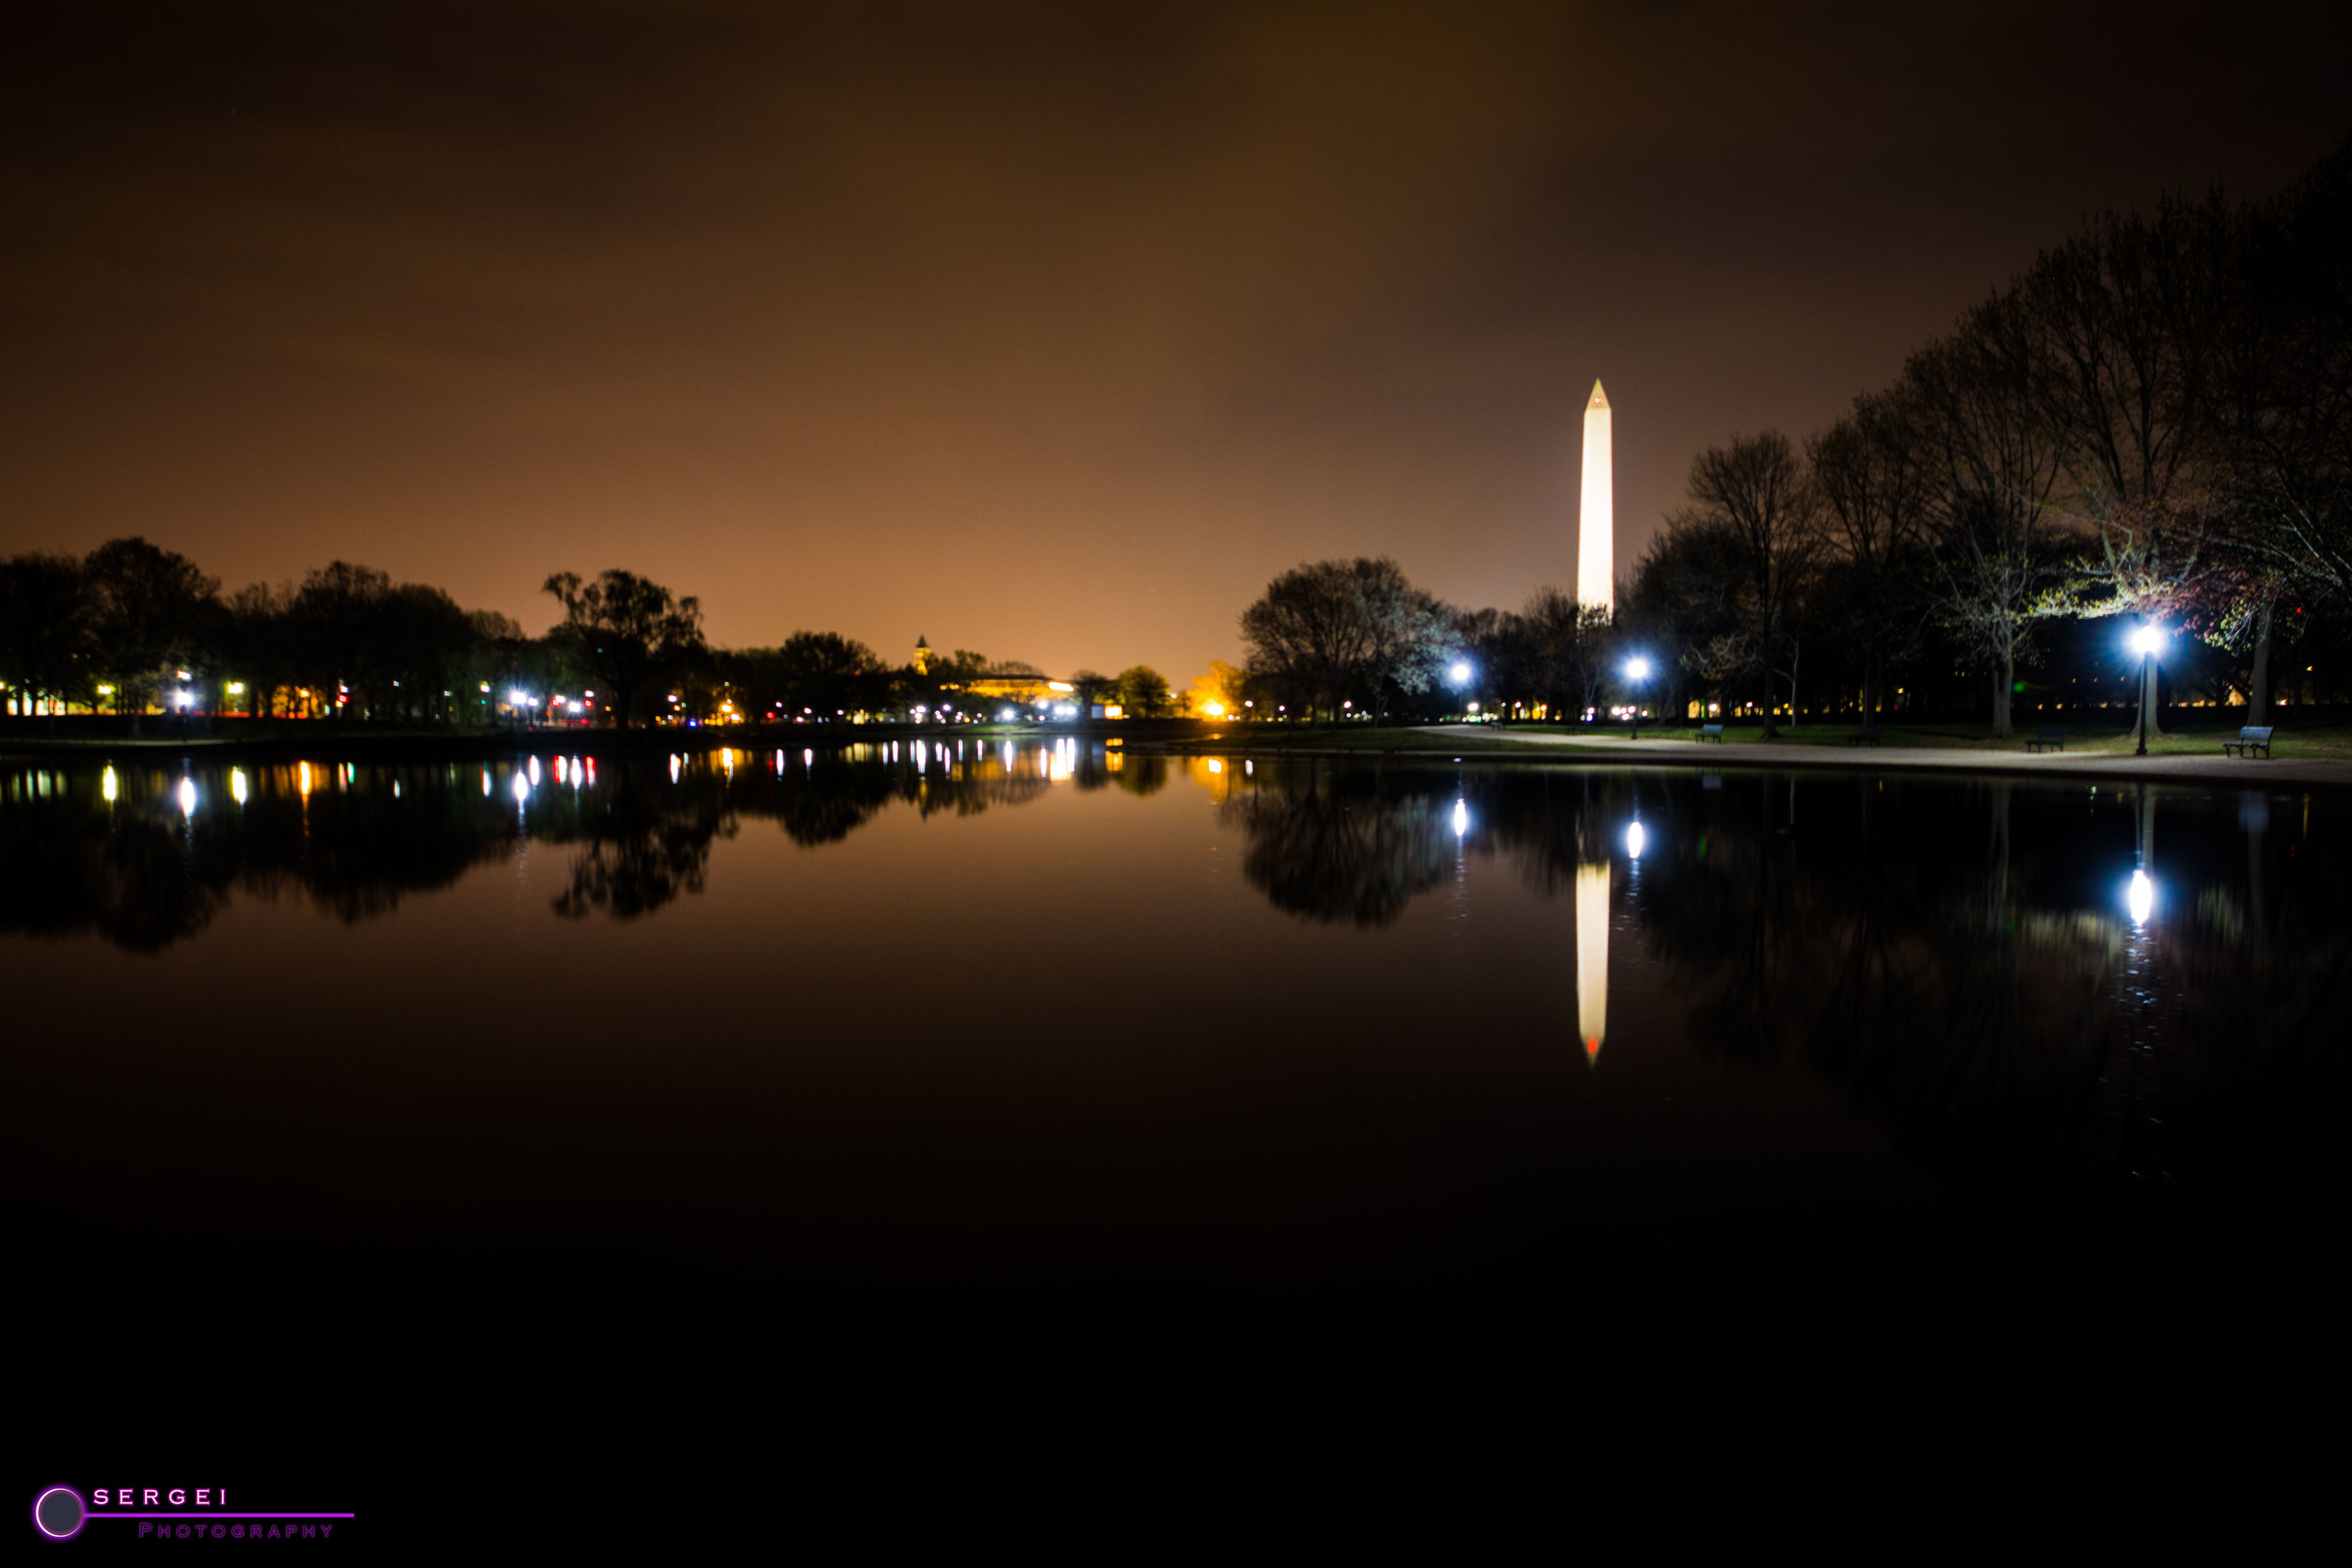 DC_Night_04142018-2971.jpg